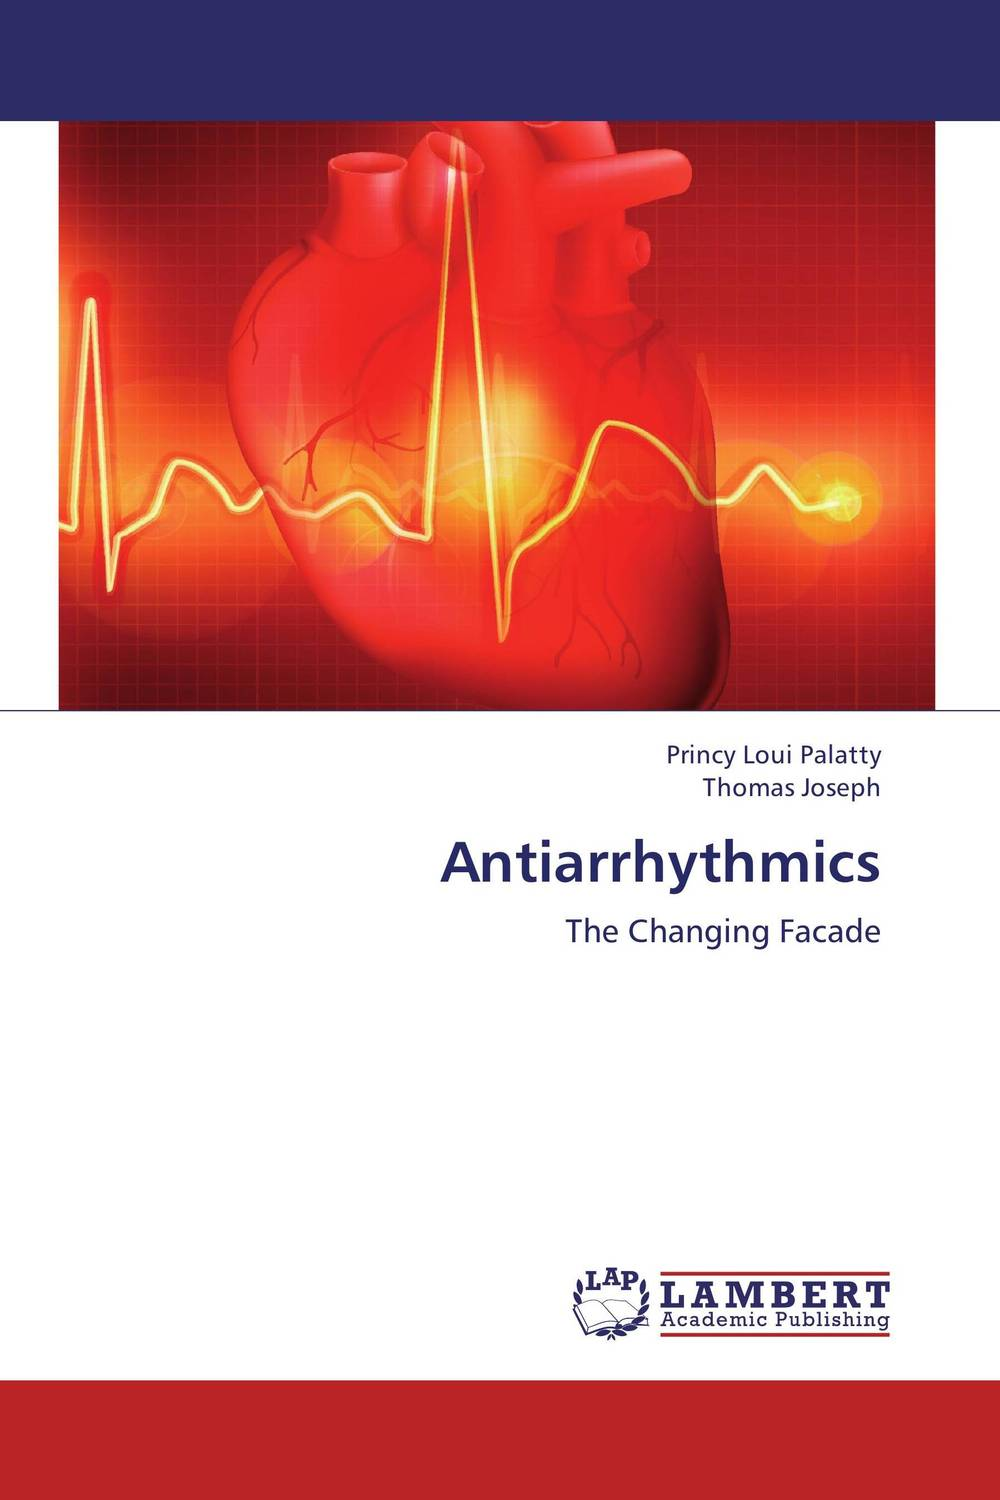 Antiarrhythmics effect of depression and drugs on sialometry and sialochemistry